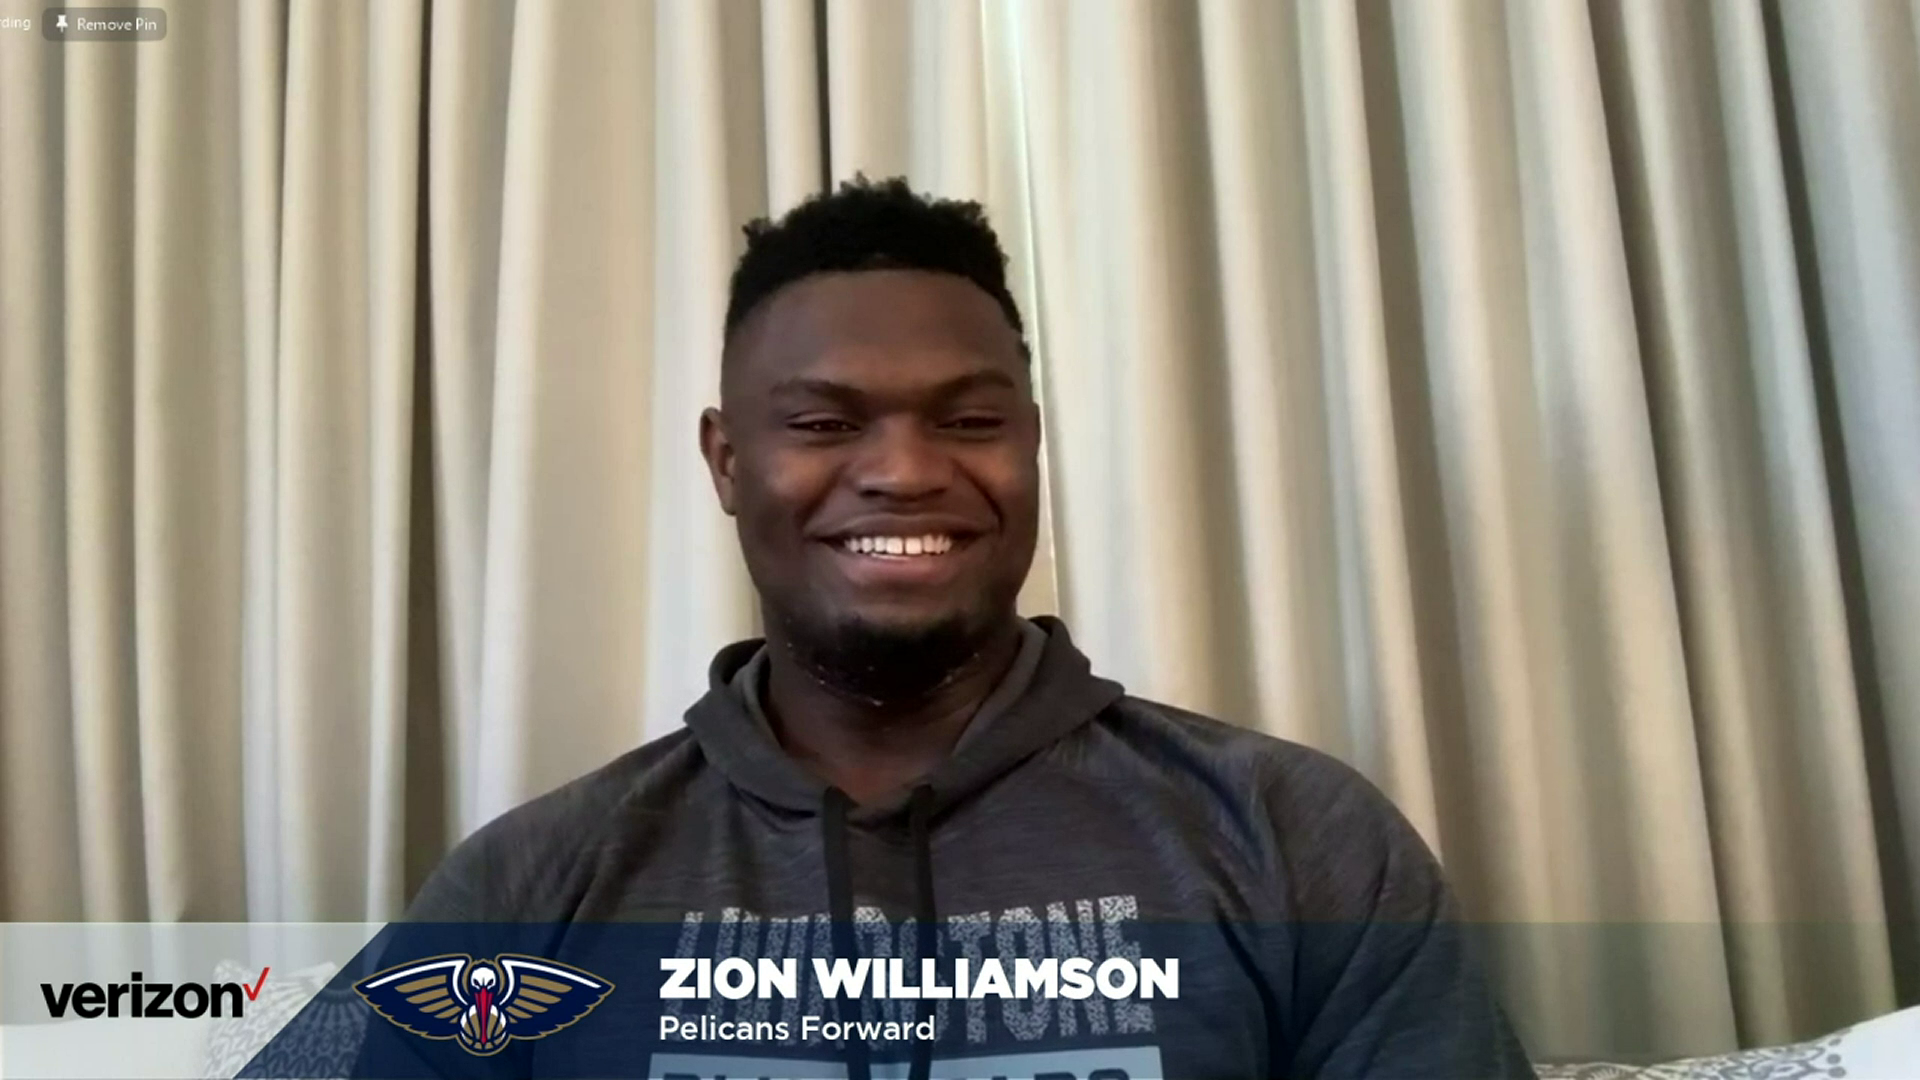 Zion Williamson talks best All-Star memories at 2021 NBA All-Star media availability